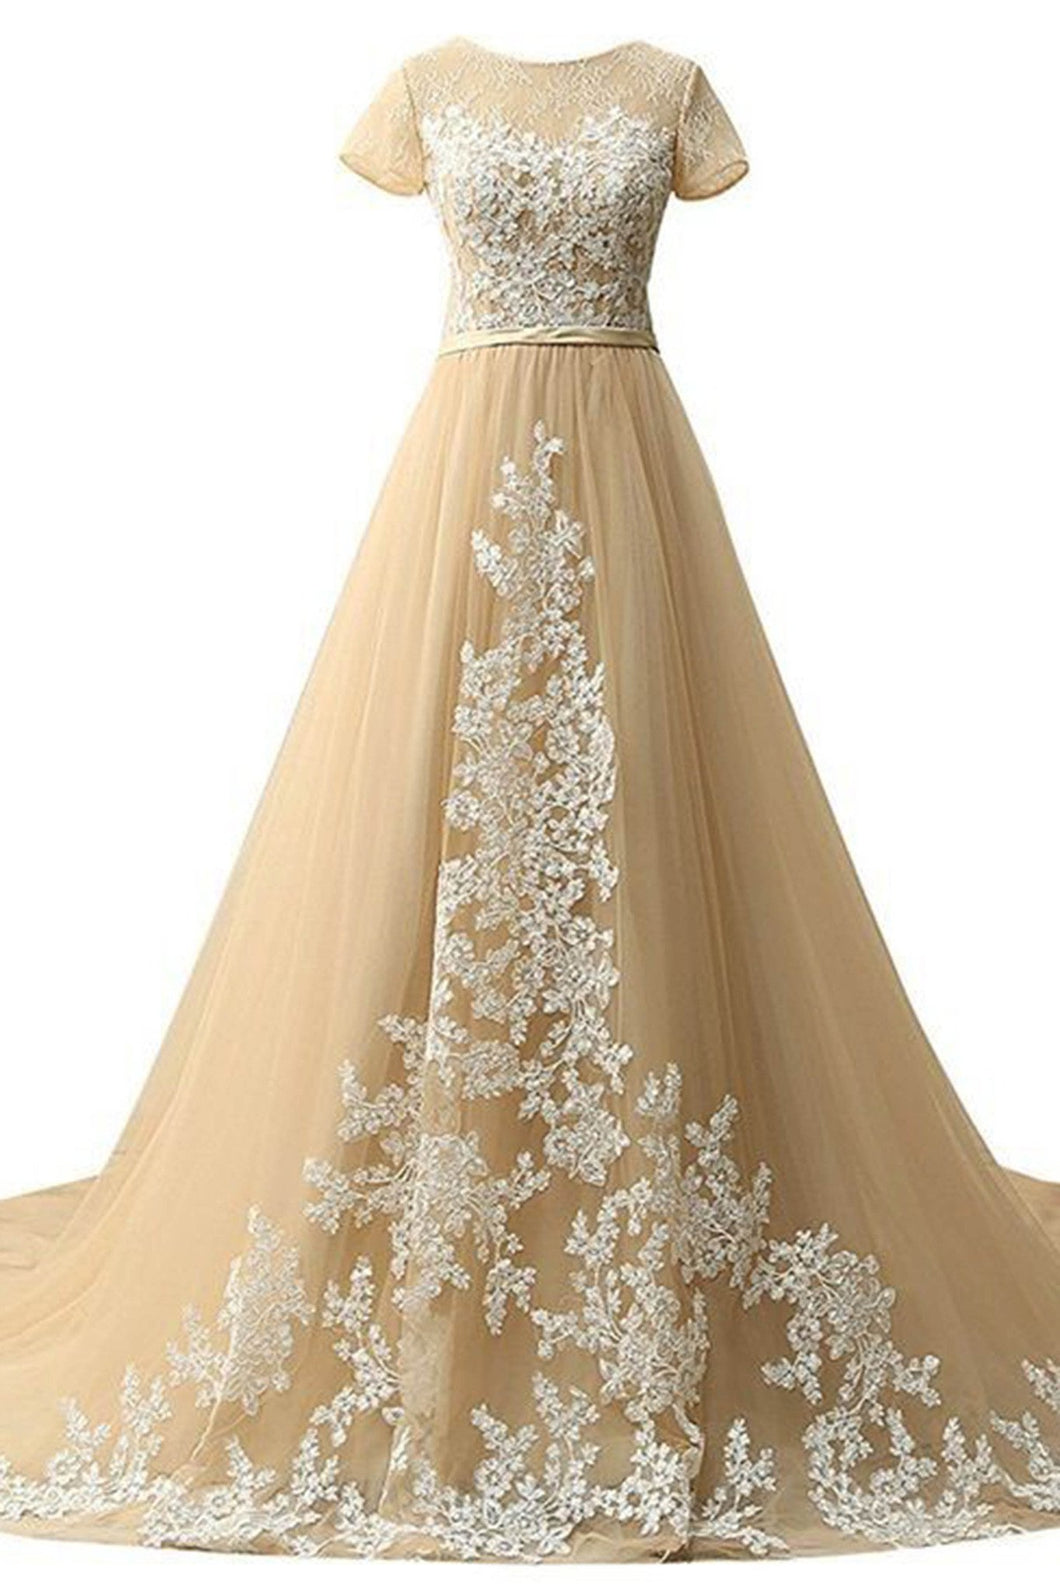 2019 Prom Dresses | Champagne tulle lace round-neck long evening dresses,formal dress for prom